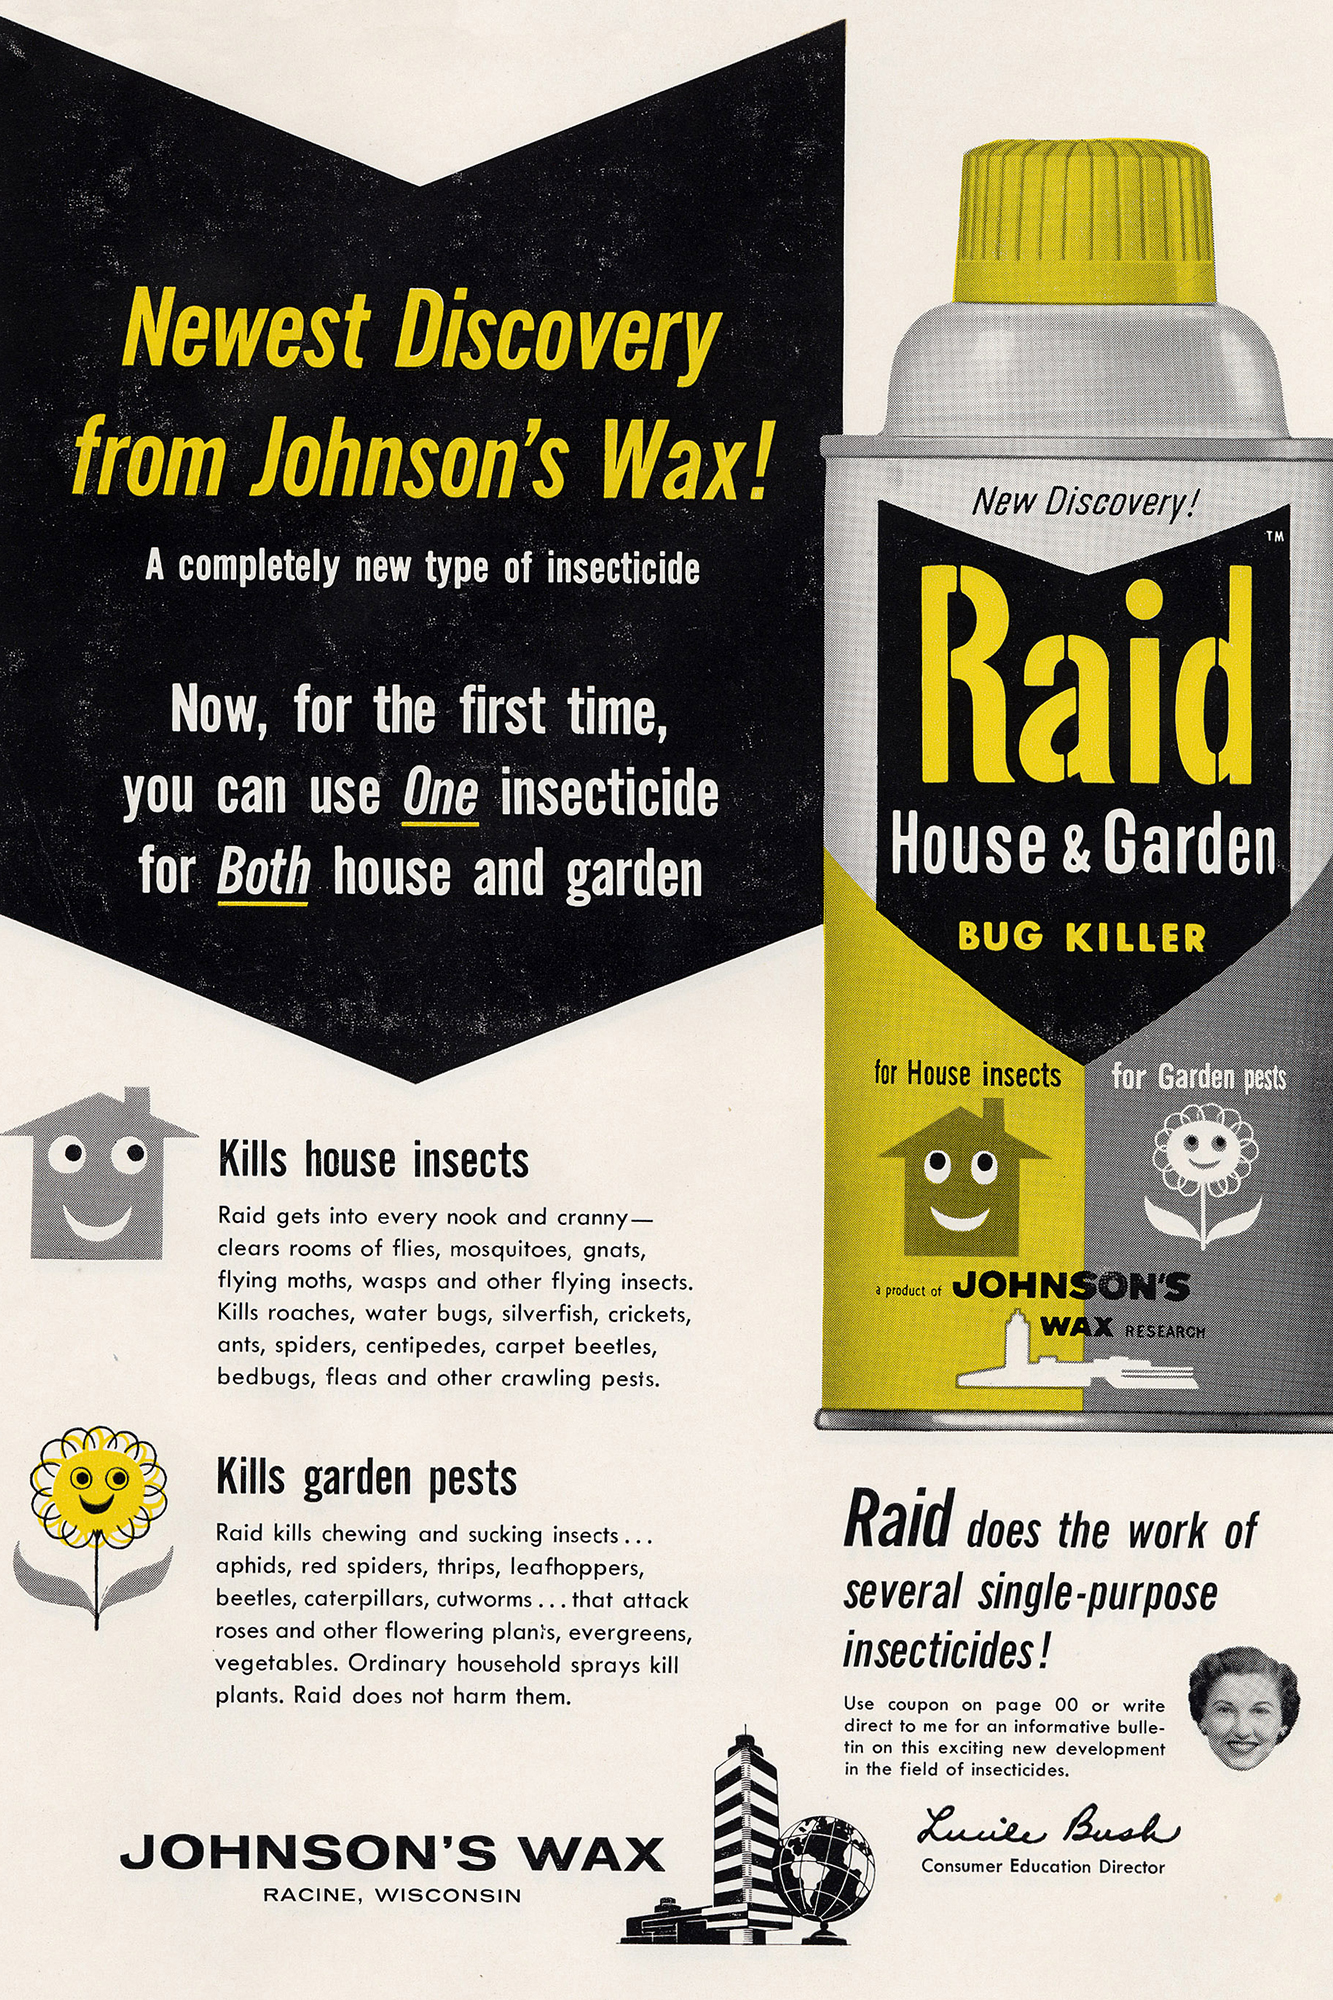 Anuncio antiguo de Johnson's Wax de 1955 para el spray contra insectos Raid